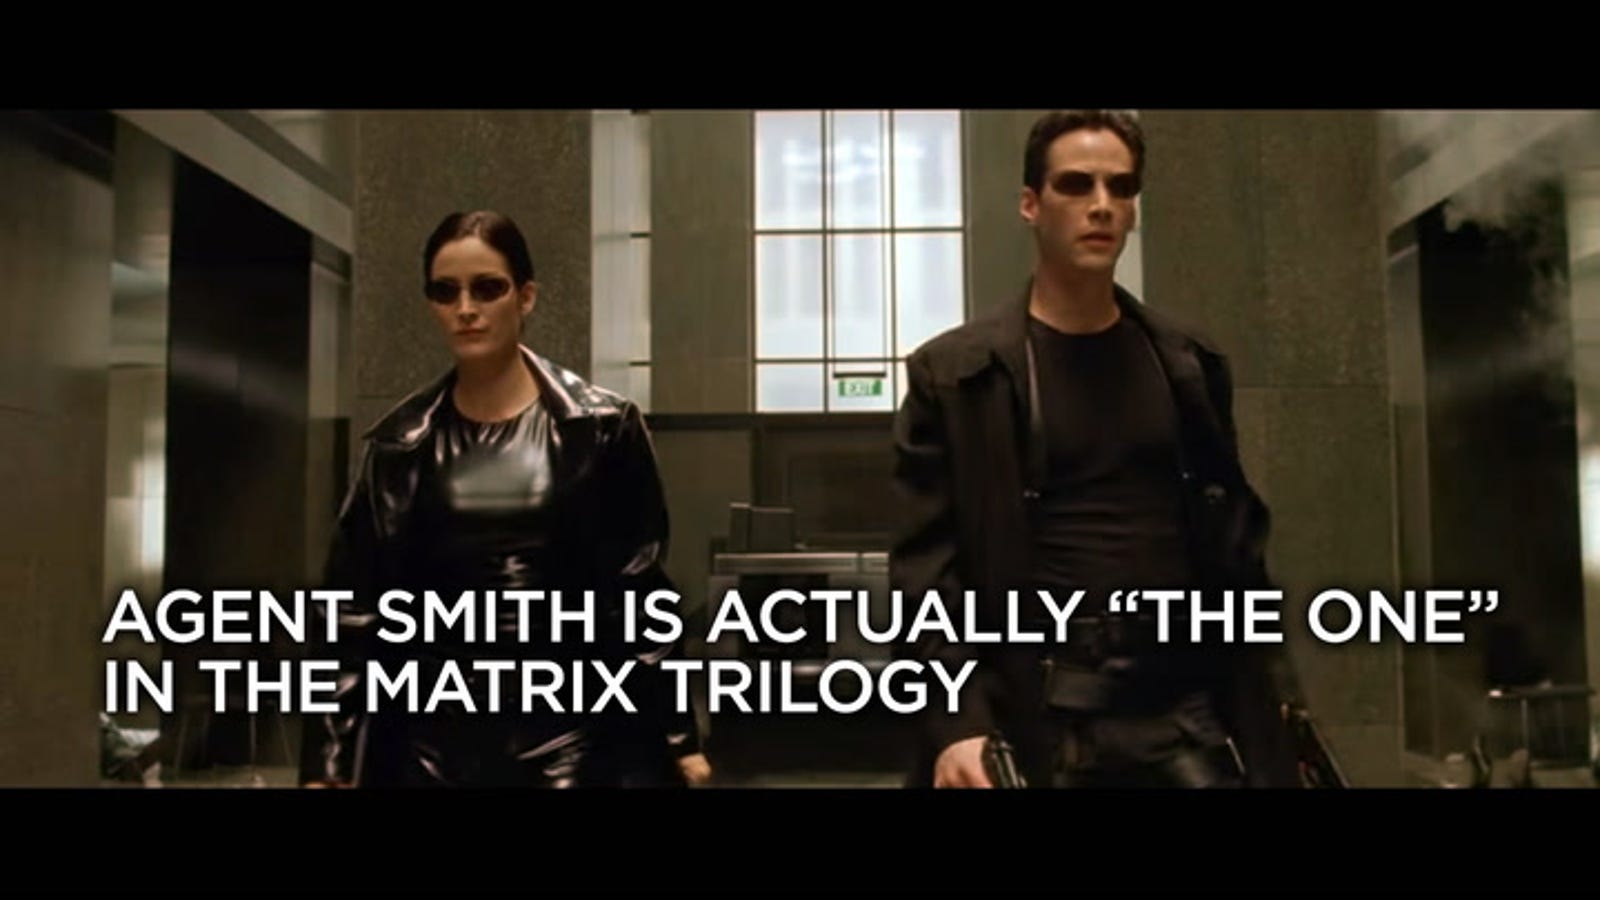 0d0d174cc099 The Matrix Fan Theory That Makes Agent Smith the True 'One'